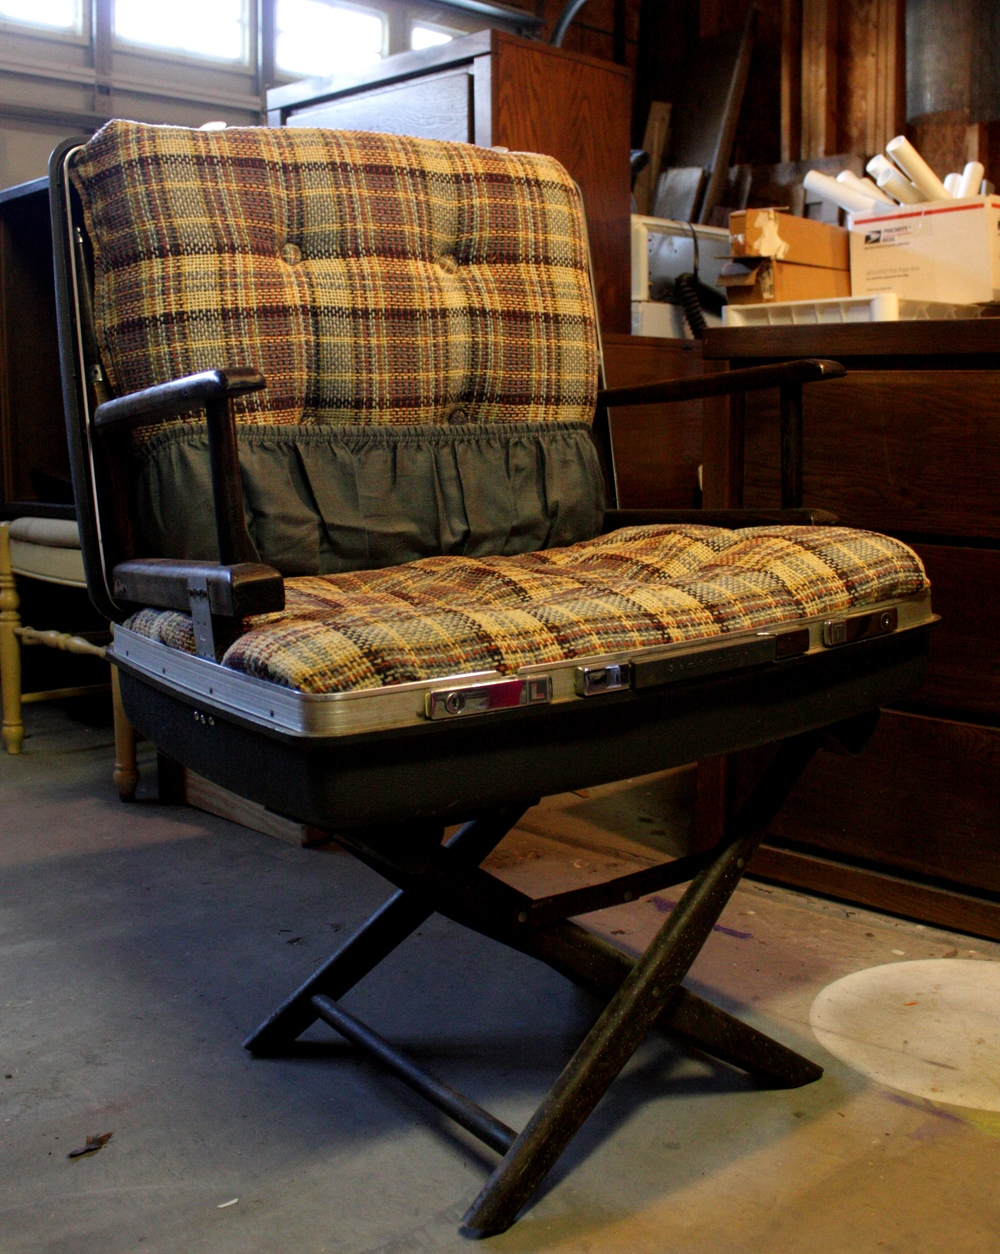 Up-cycled chair, directors chair with suit case